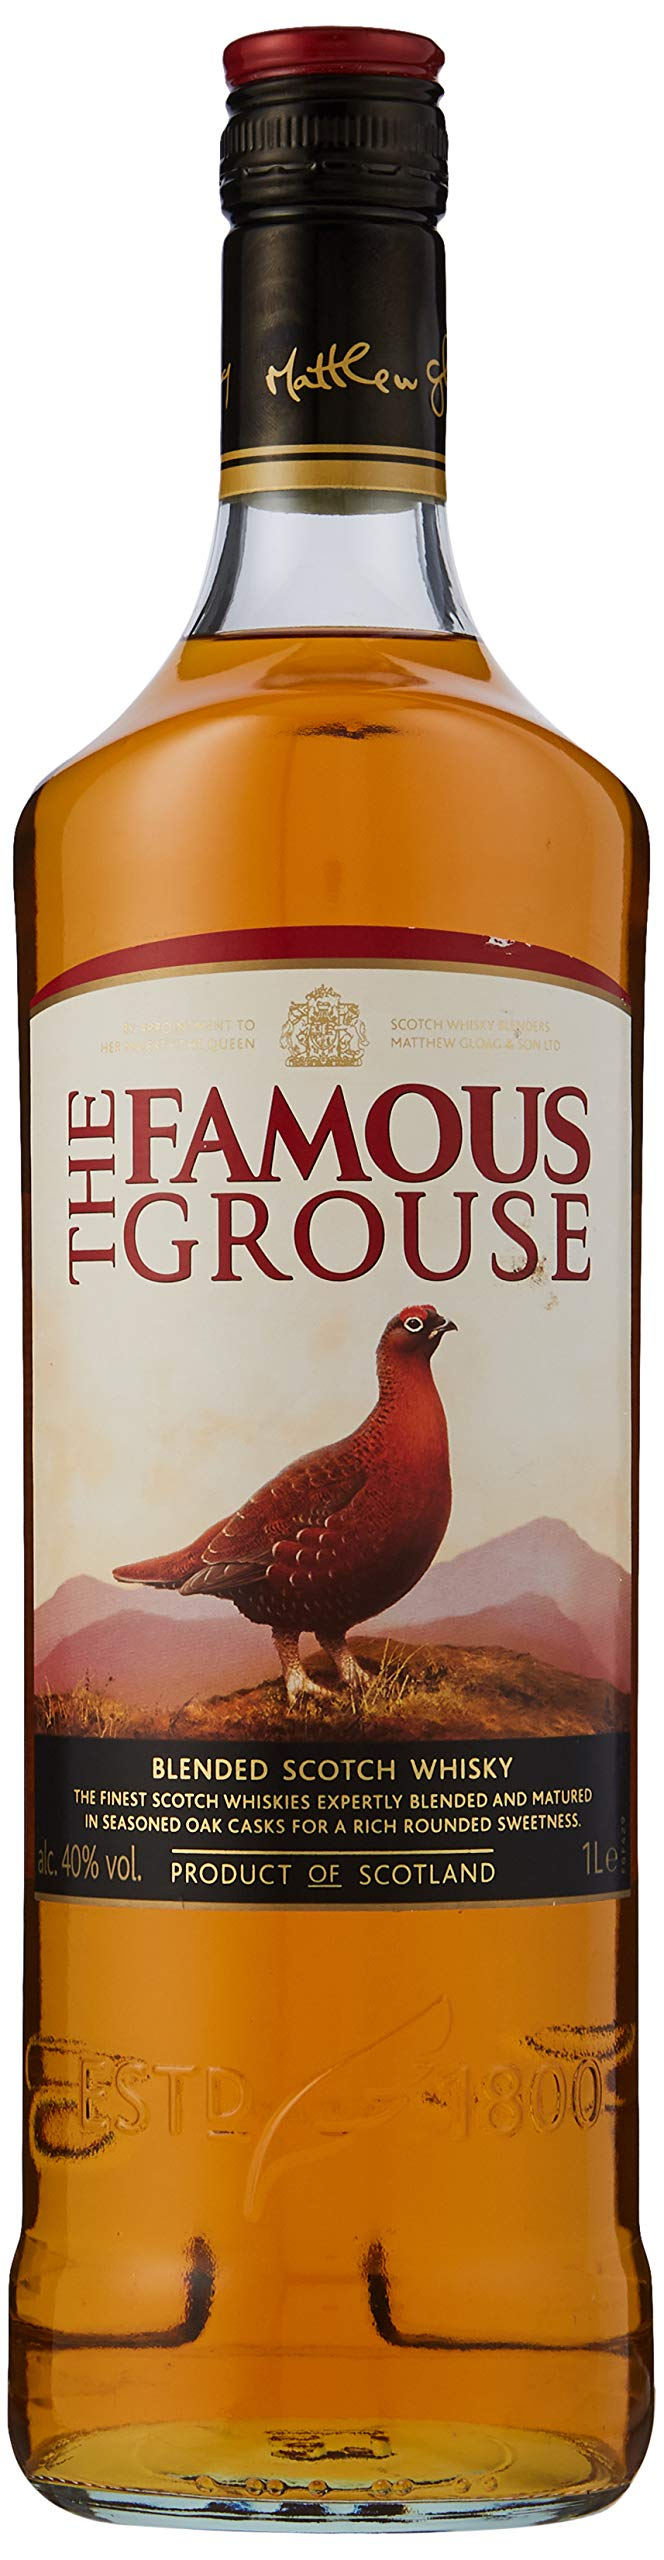 The Famous Grouse Blended Scotch Whisky, 1L